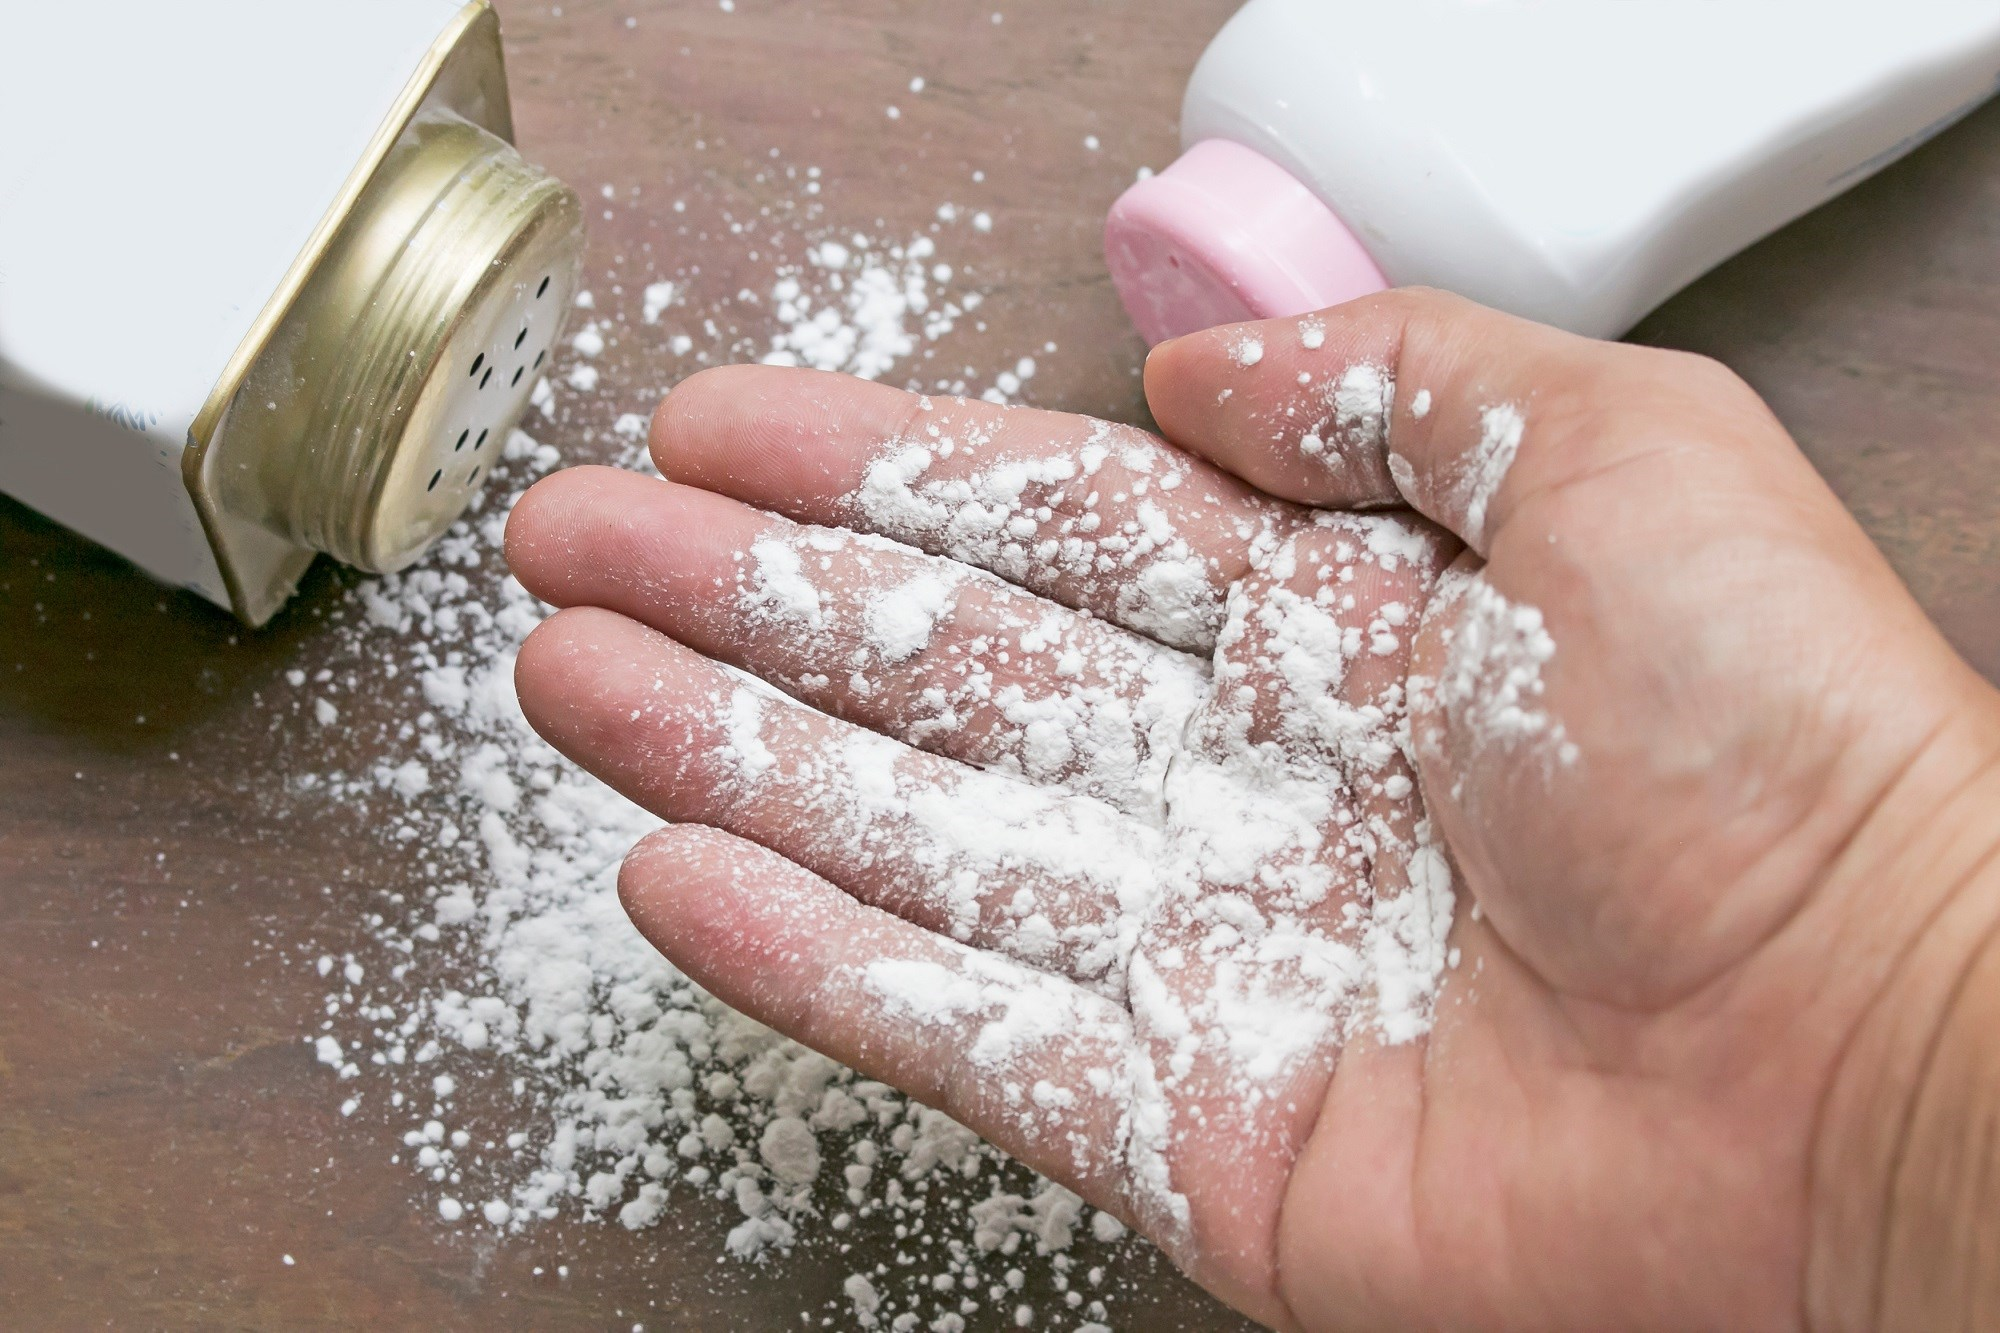 Link for Asbestos-Free Talcum Powder, Cancer Not Clear